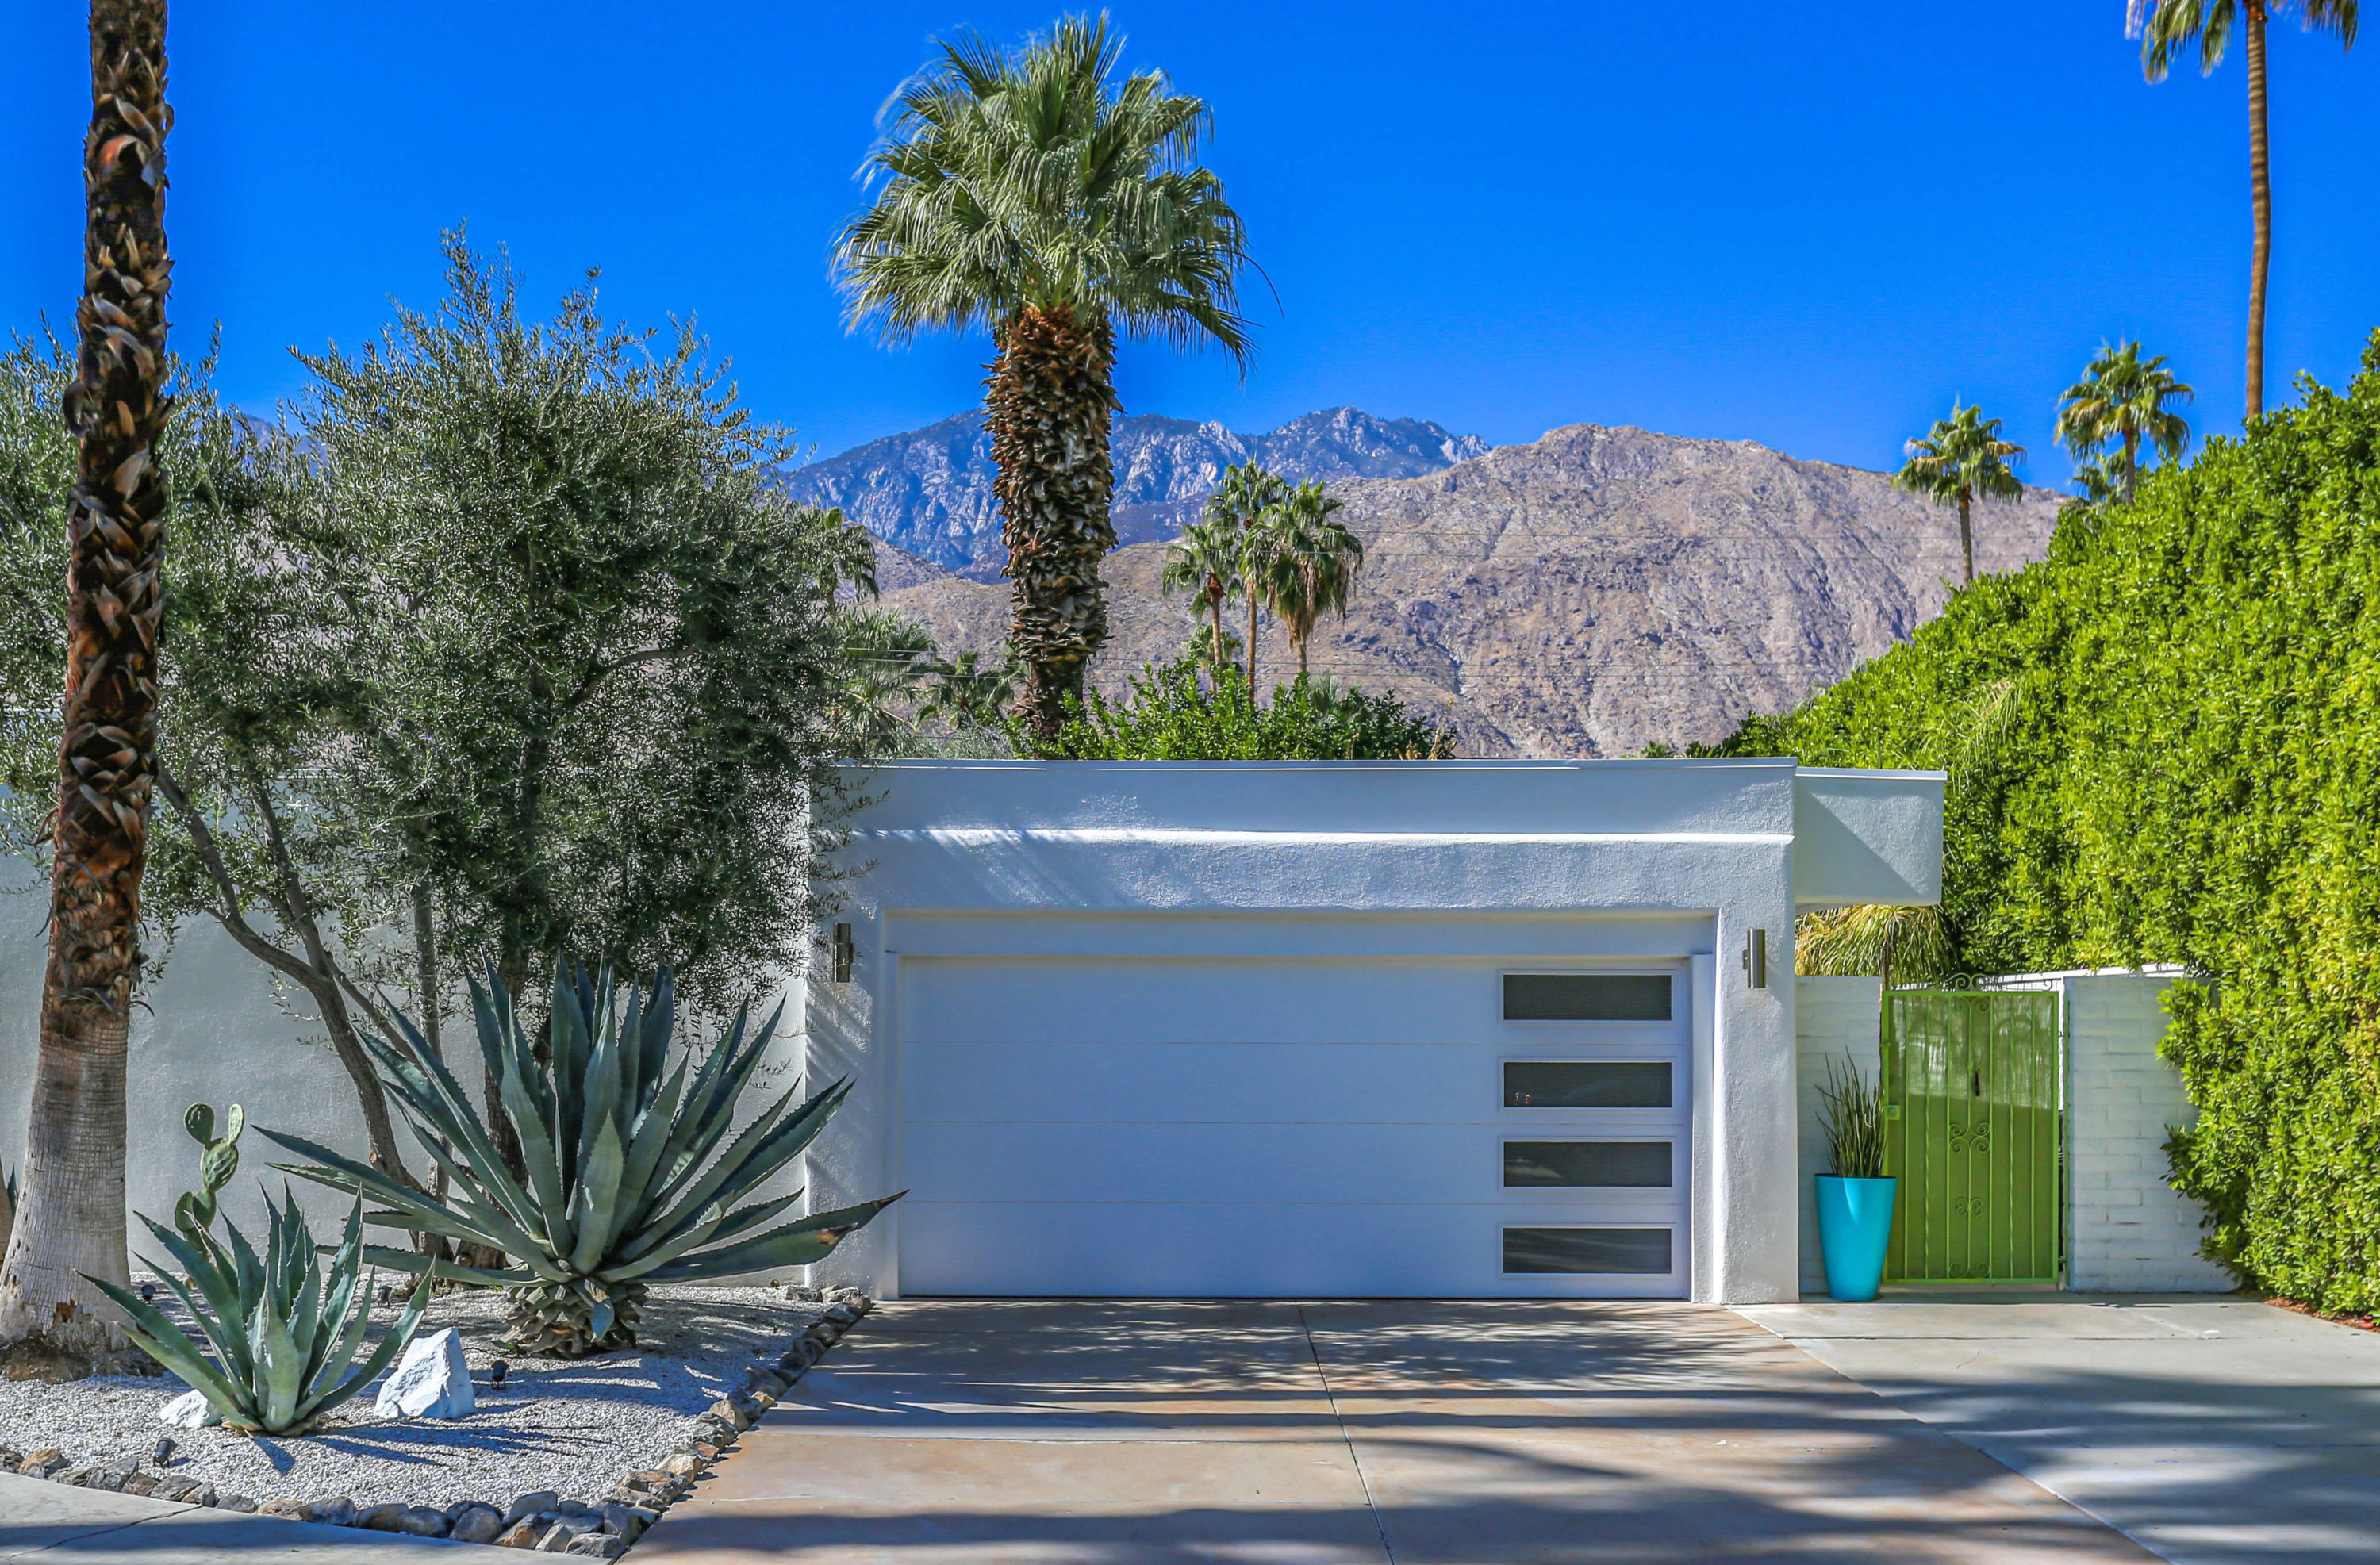 1475 S Paseo De Marcia, Palm Springs, California 92264, 3 Bedrooms Bedrooms, ,3 BathroomsBathrooms,Residential,For Sale,1475 S Paseo De Marcia,219032958